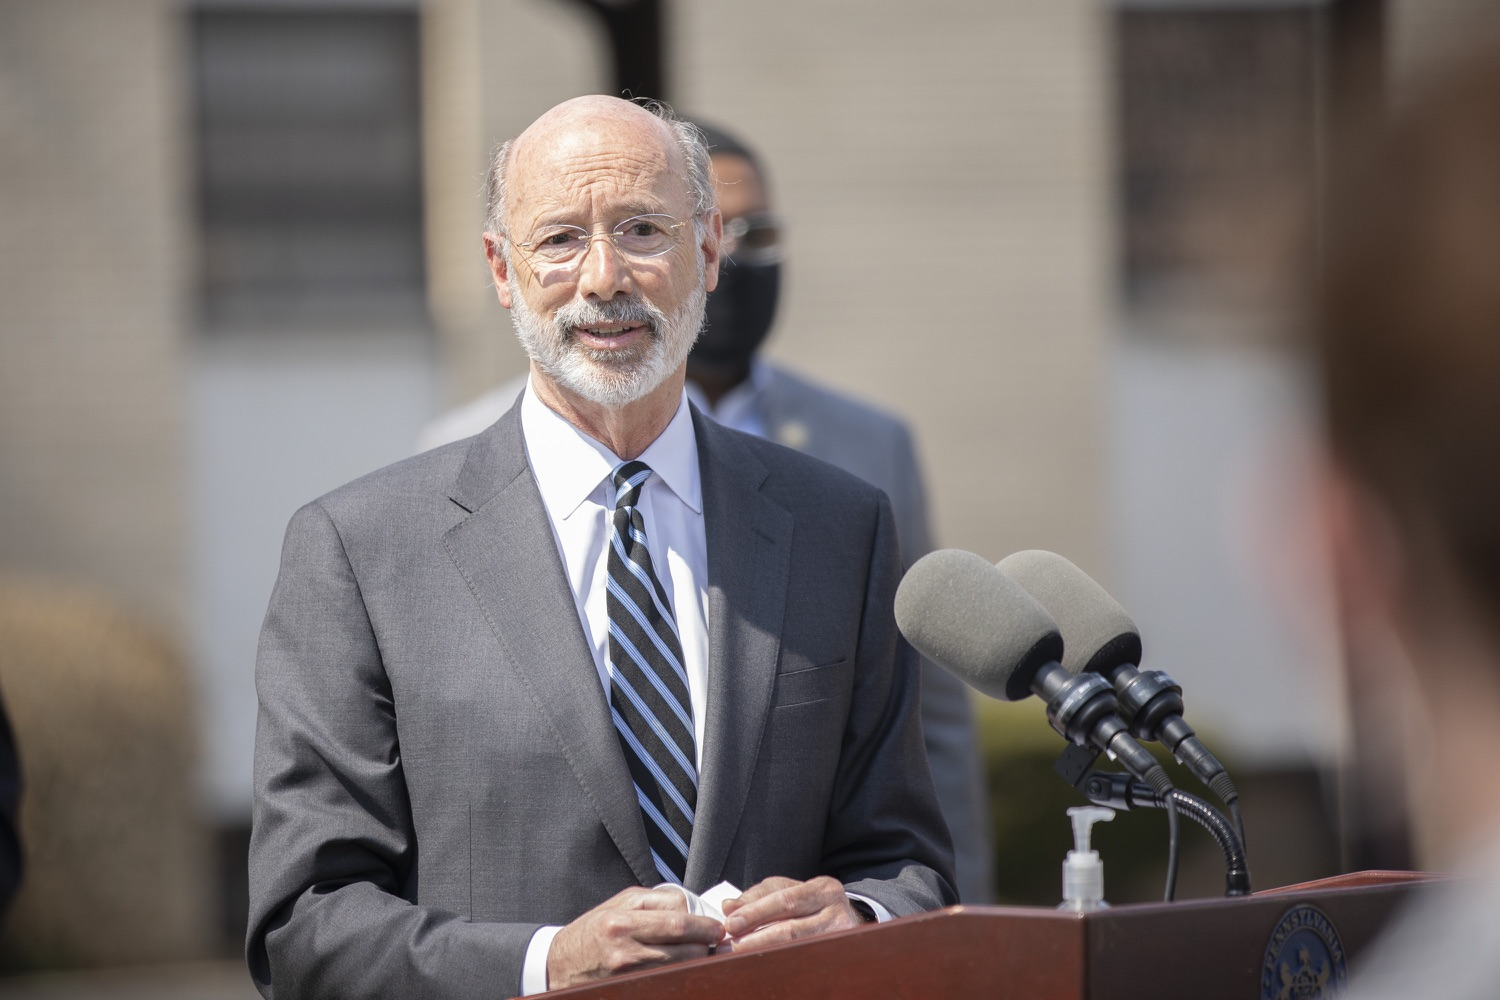 "<a href=""https://filesource.wostreaming.net/commonwealthofpa/photo/18666_gov_vaccines_dz_004.jpg"" target=""_blank"">⇣ Download Photo<br></a>Pennsylvania Governor Tom Wolf speaking to the press.  As Pennsylvanias vaccination plan accelerates and more than a third of the states eligible population is vaccinated, Governor Tom Wolf today visited a new vaccination clinic in McKeesport to talk about vaccine equity and progress.  McKeesport, PA  April 7, 2021"